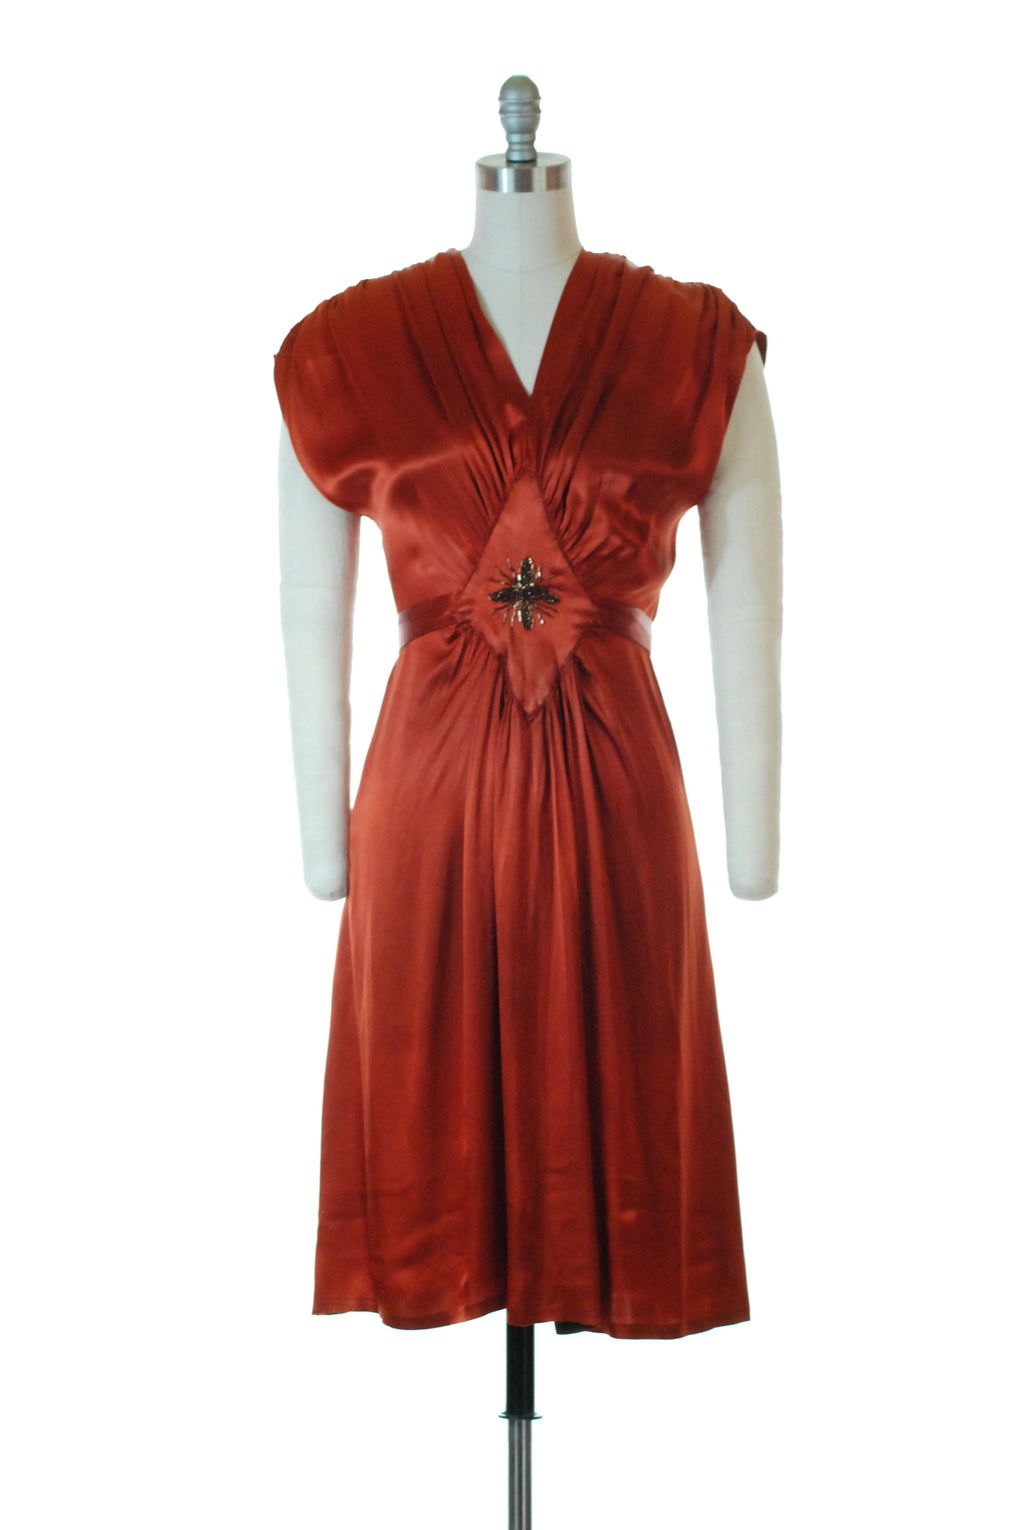 Stunning 1940s Homemade Cocktail Dress in Rust Orange Rayon Satin